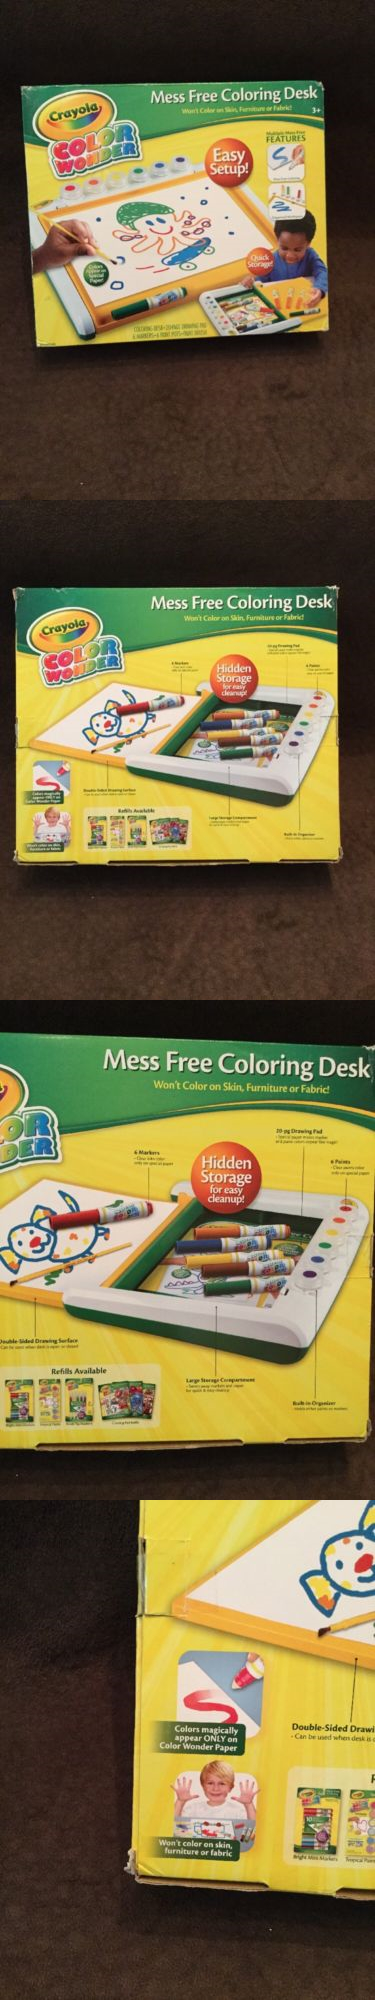 other kids drawing and painting 160718 crayons color wonder mess